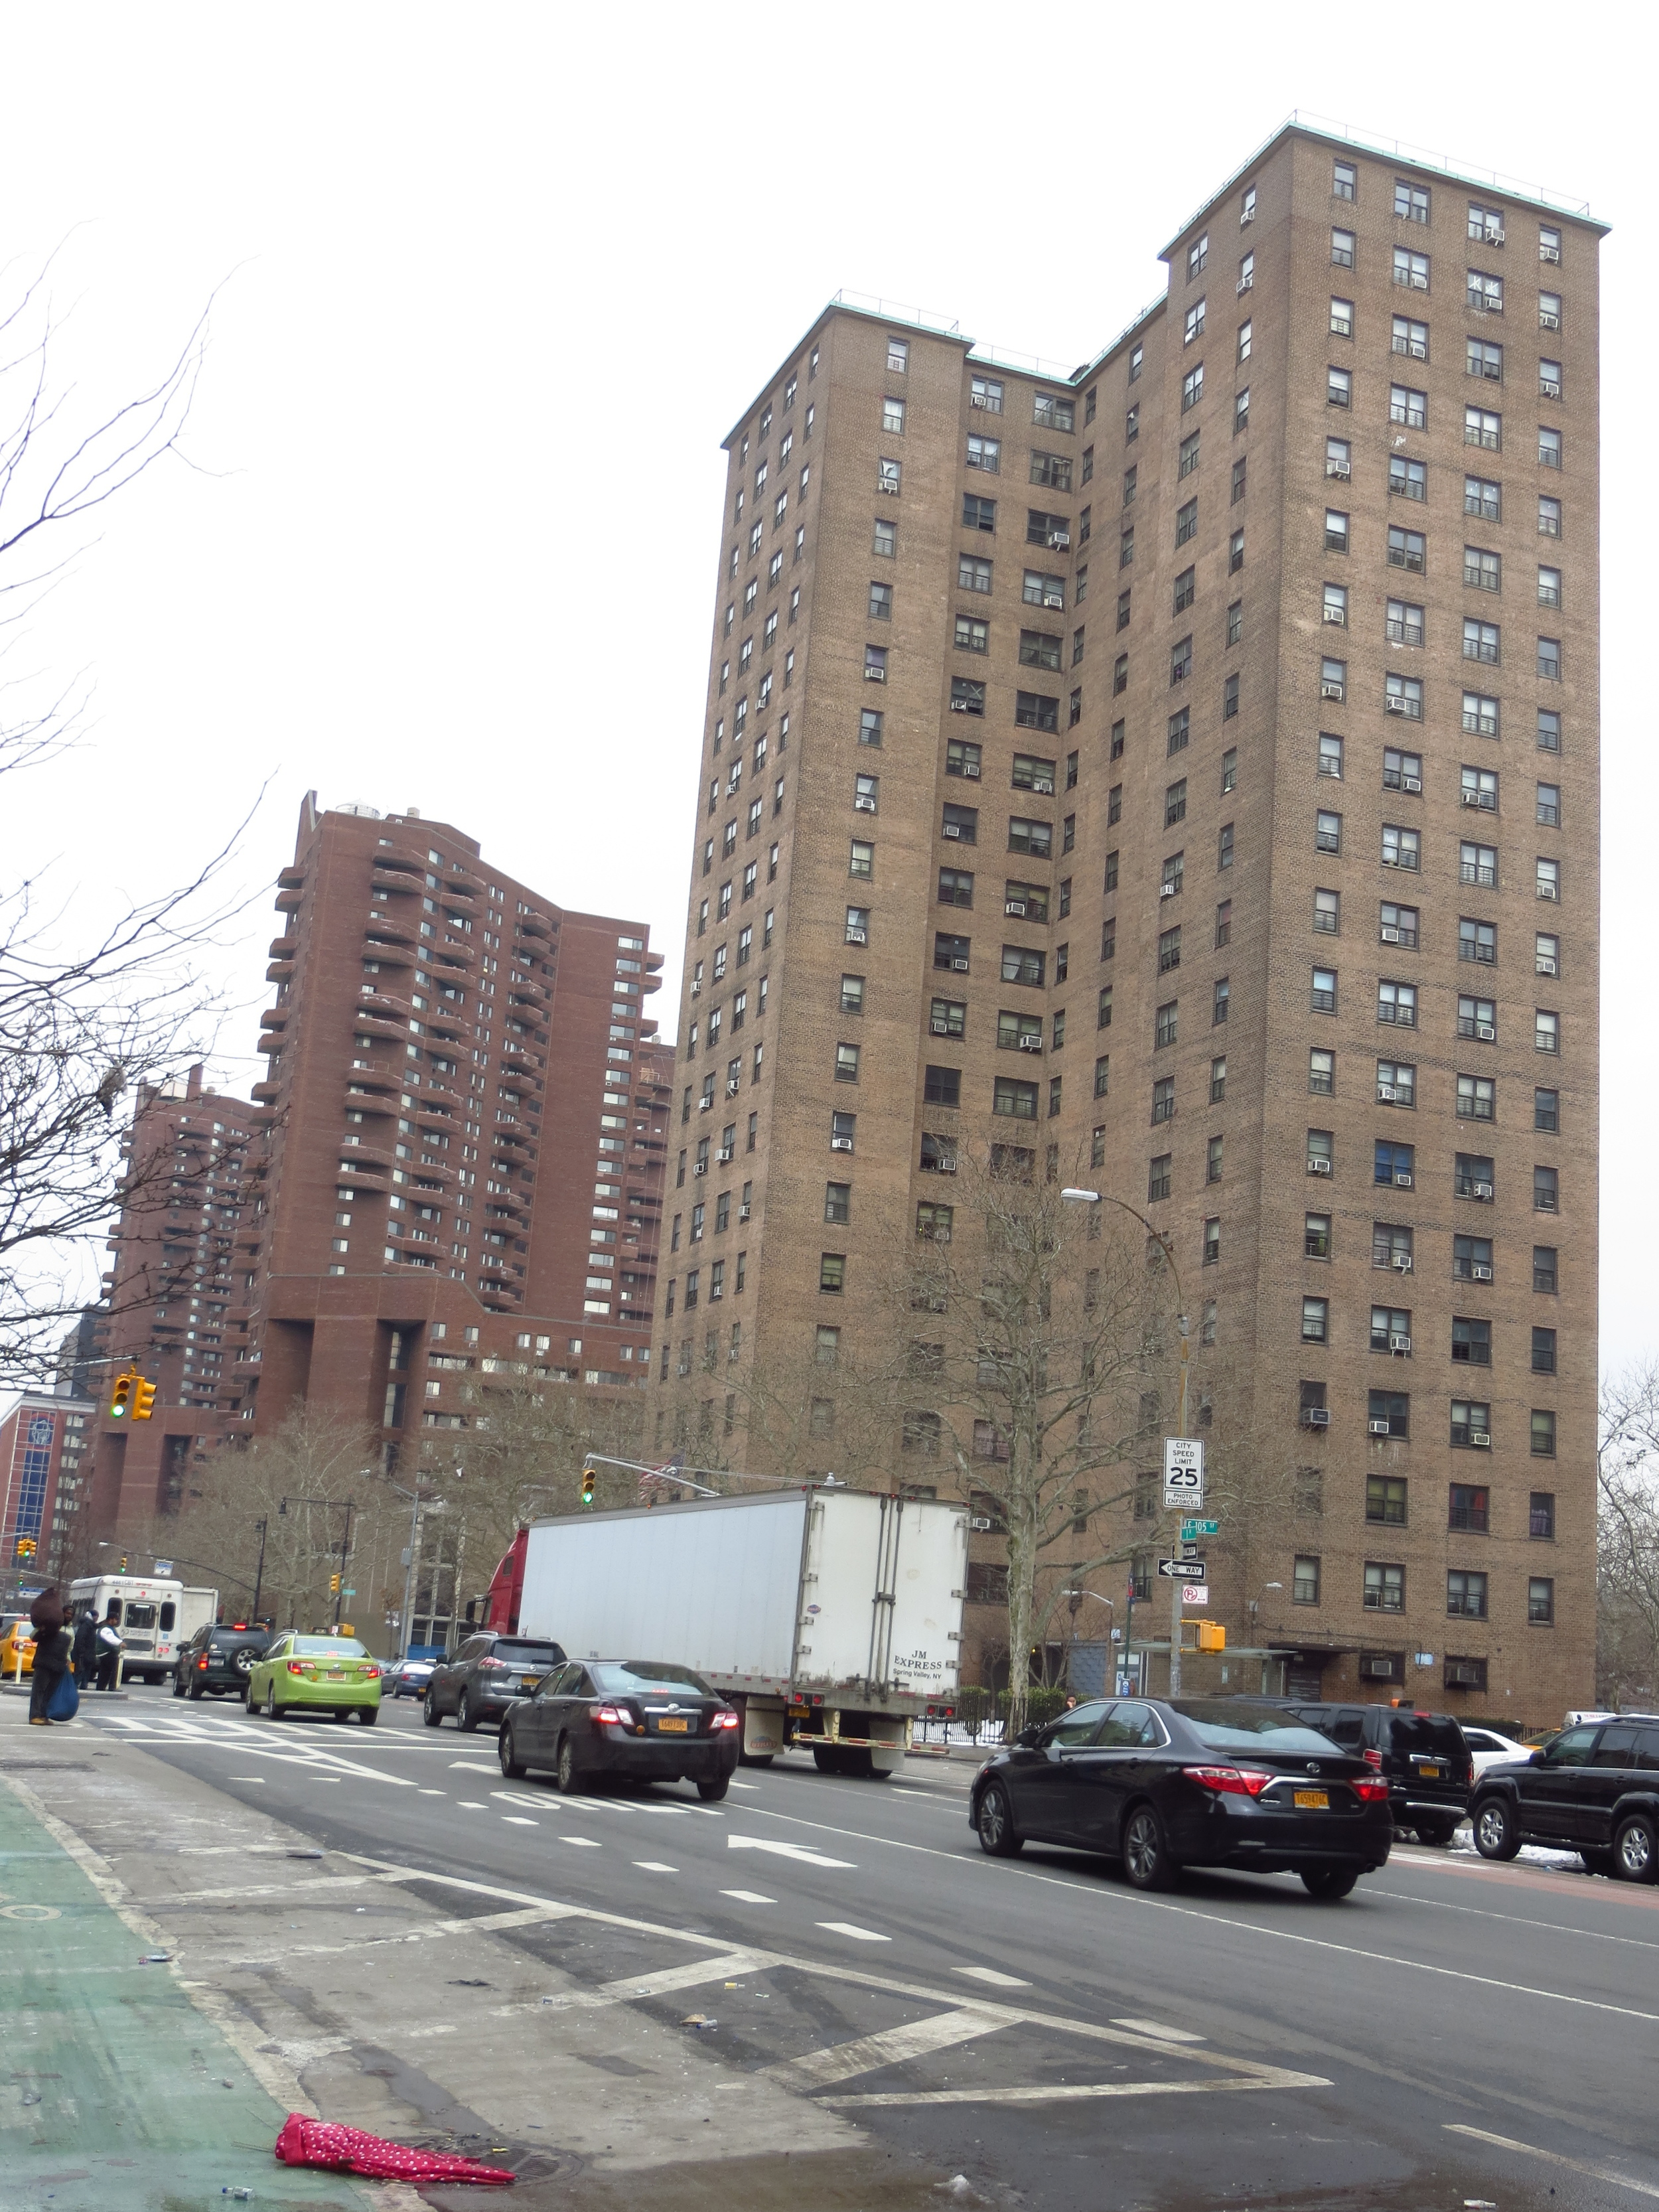 1st Ave. Apartments